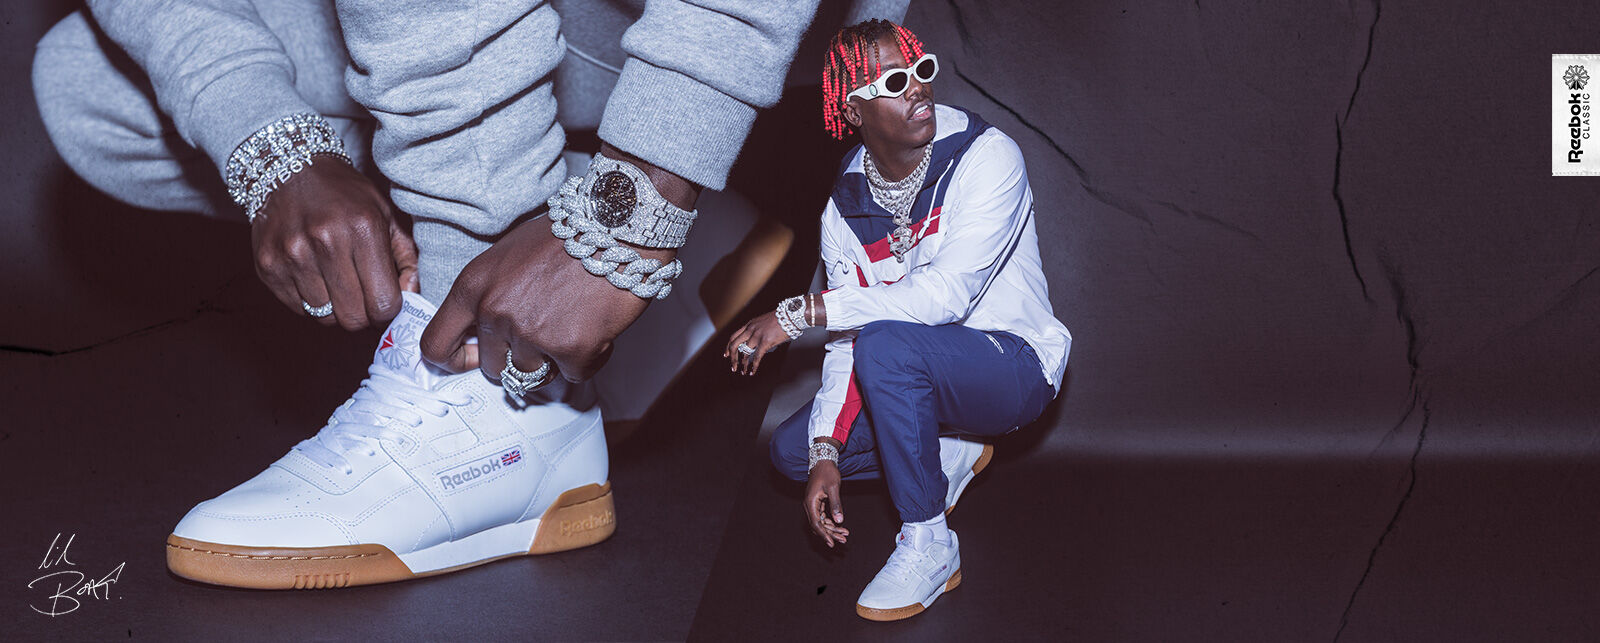 0b39d4640af0 Always Classic - Lil Yachty. BREAKING CLASSIC